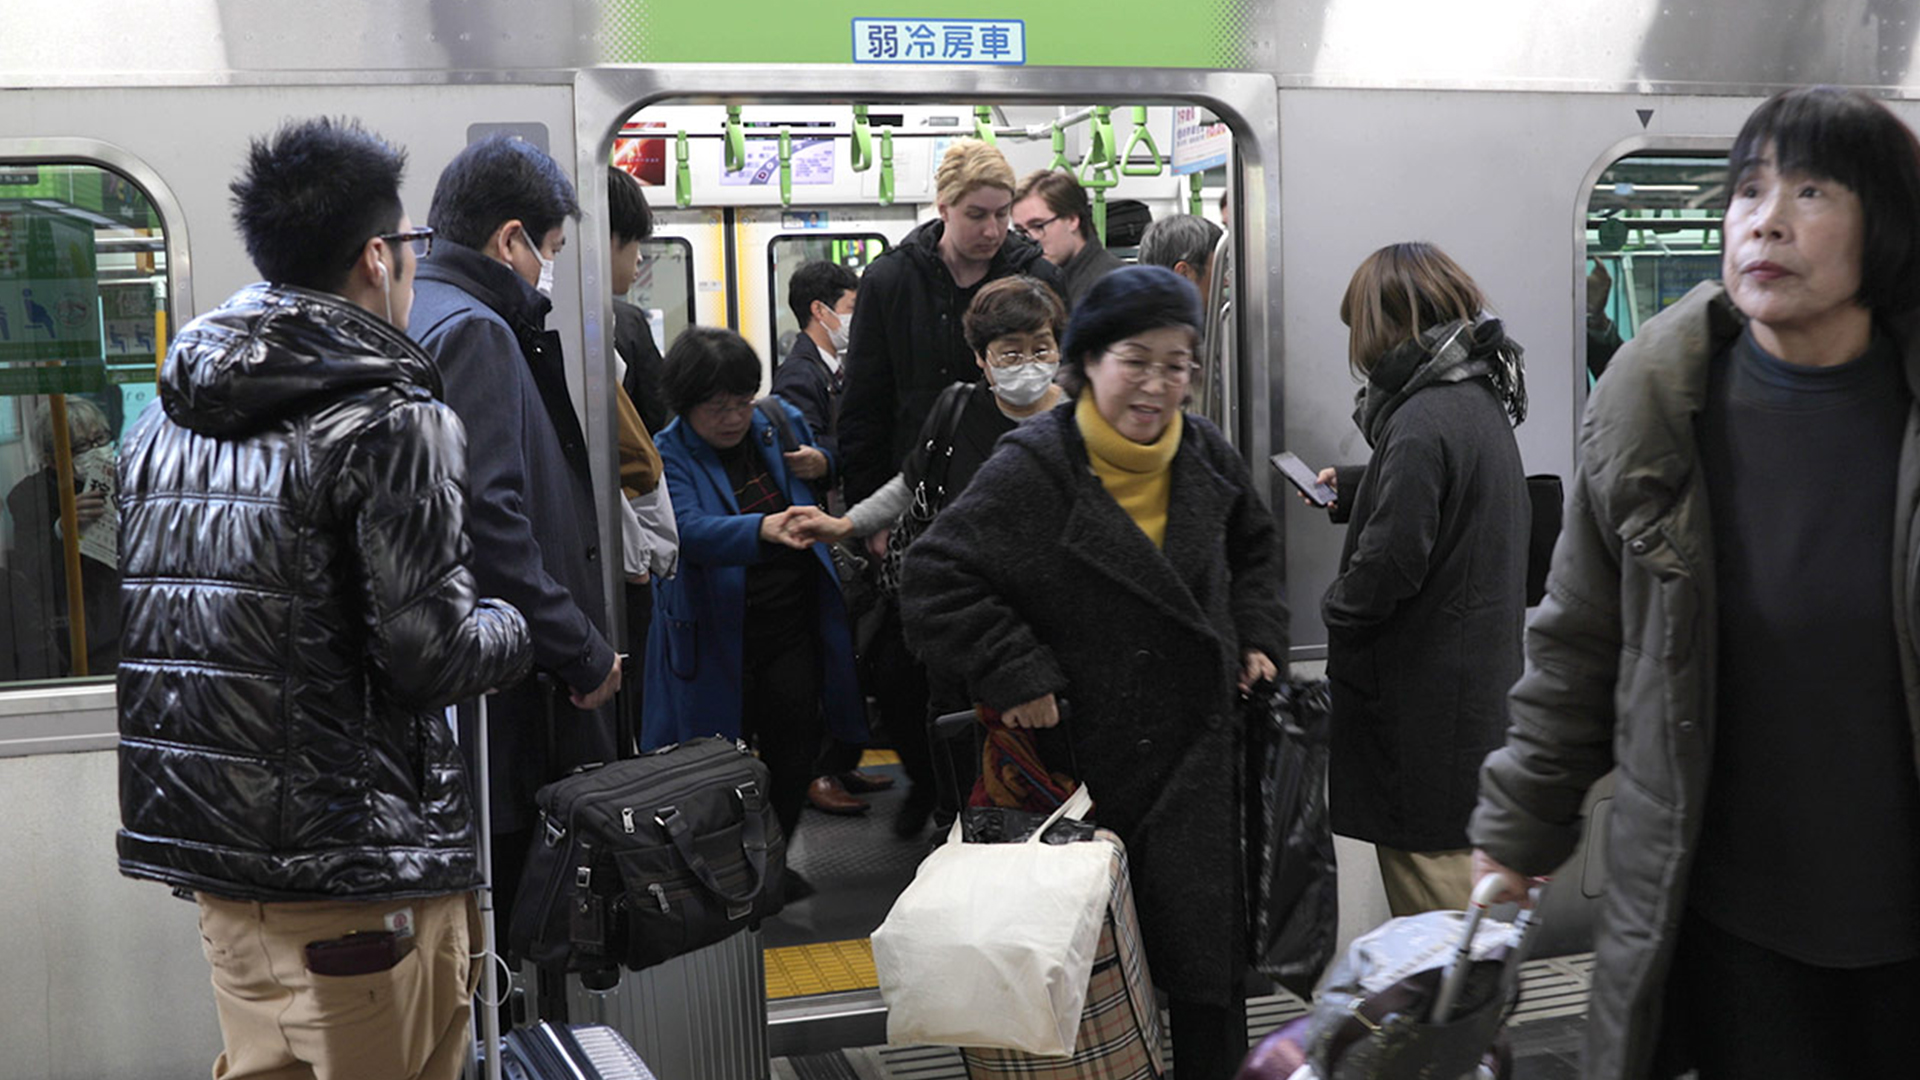 Visiting Tokyo? Here's how to ride the train like a local.